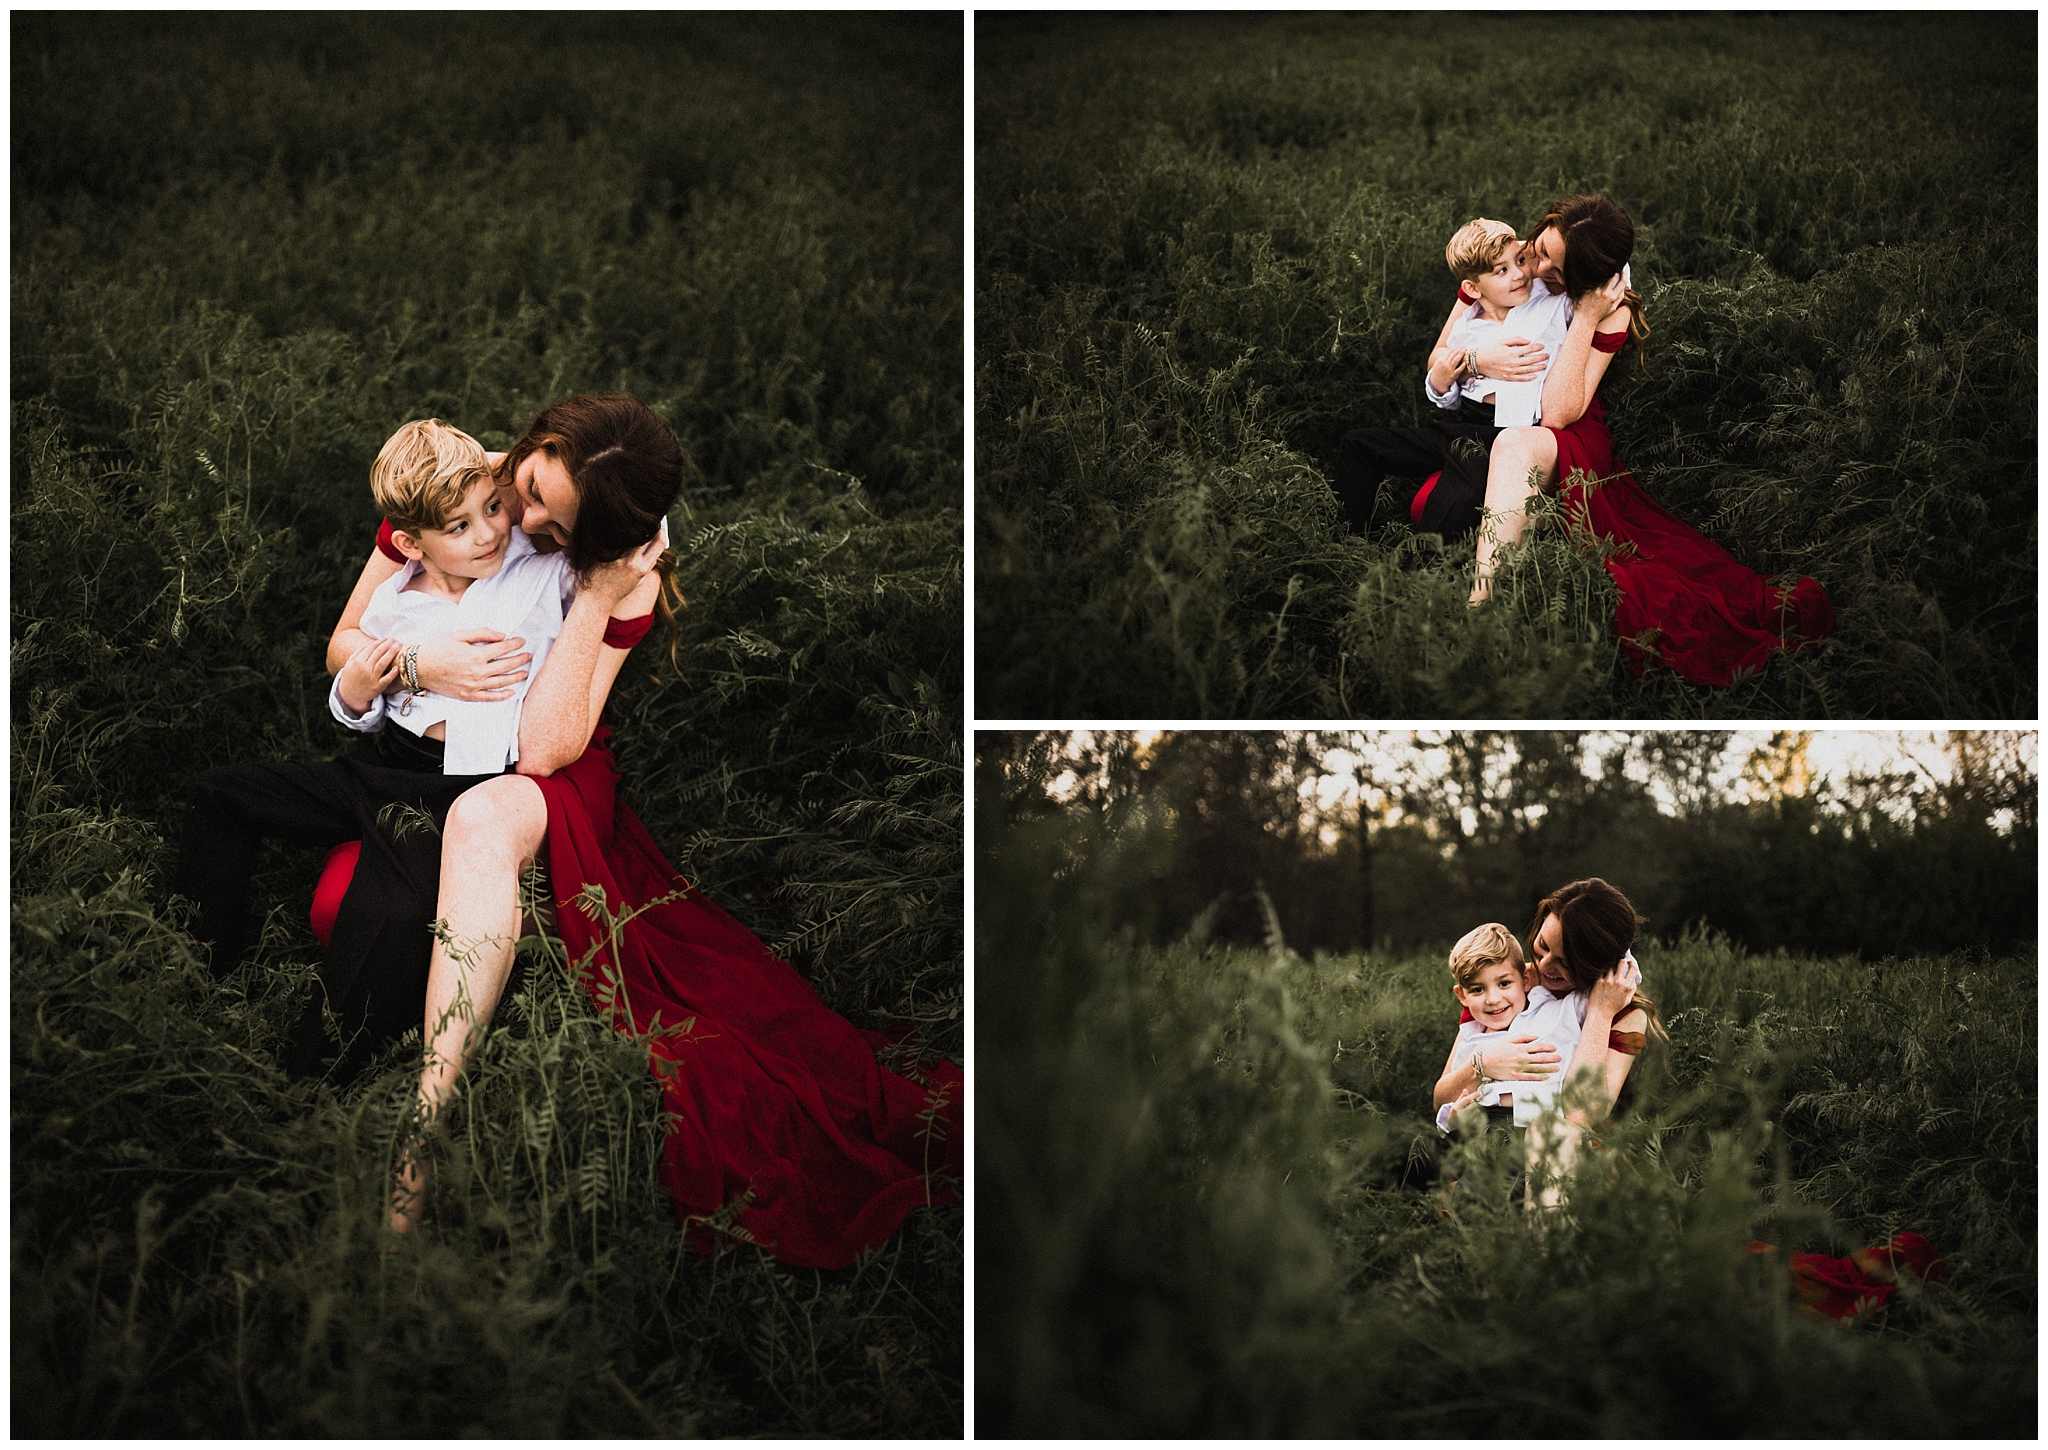 twyla jones photography | south florida family photographer | mother son session in a meadow-20160420-_TDJ4043.jpg